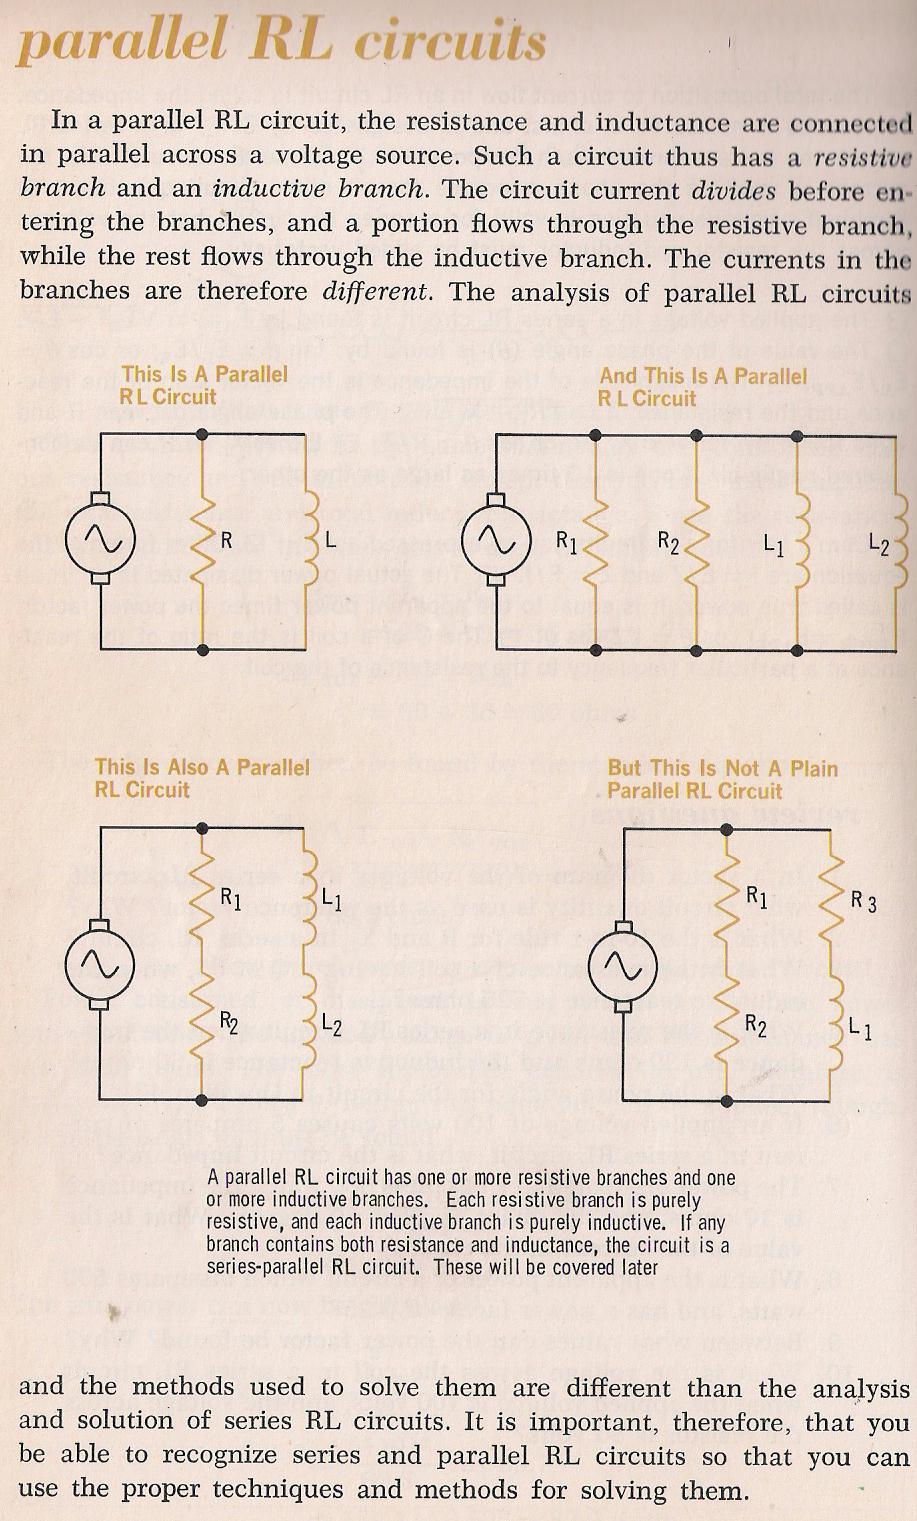 Rlc Circuits Such As Series Parallel And 015 Rl By Larry E Gugle K4rfe